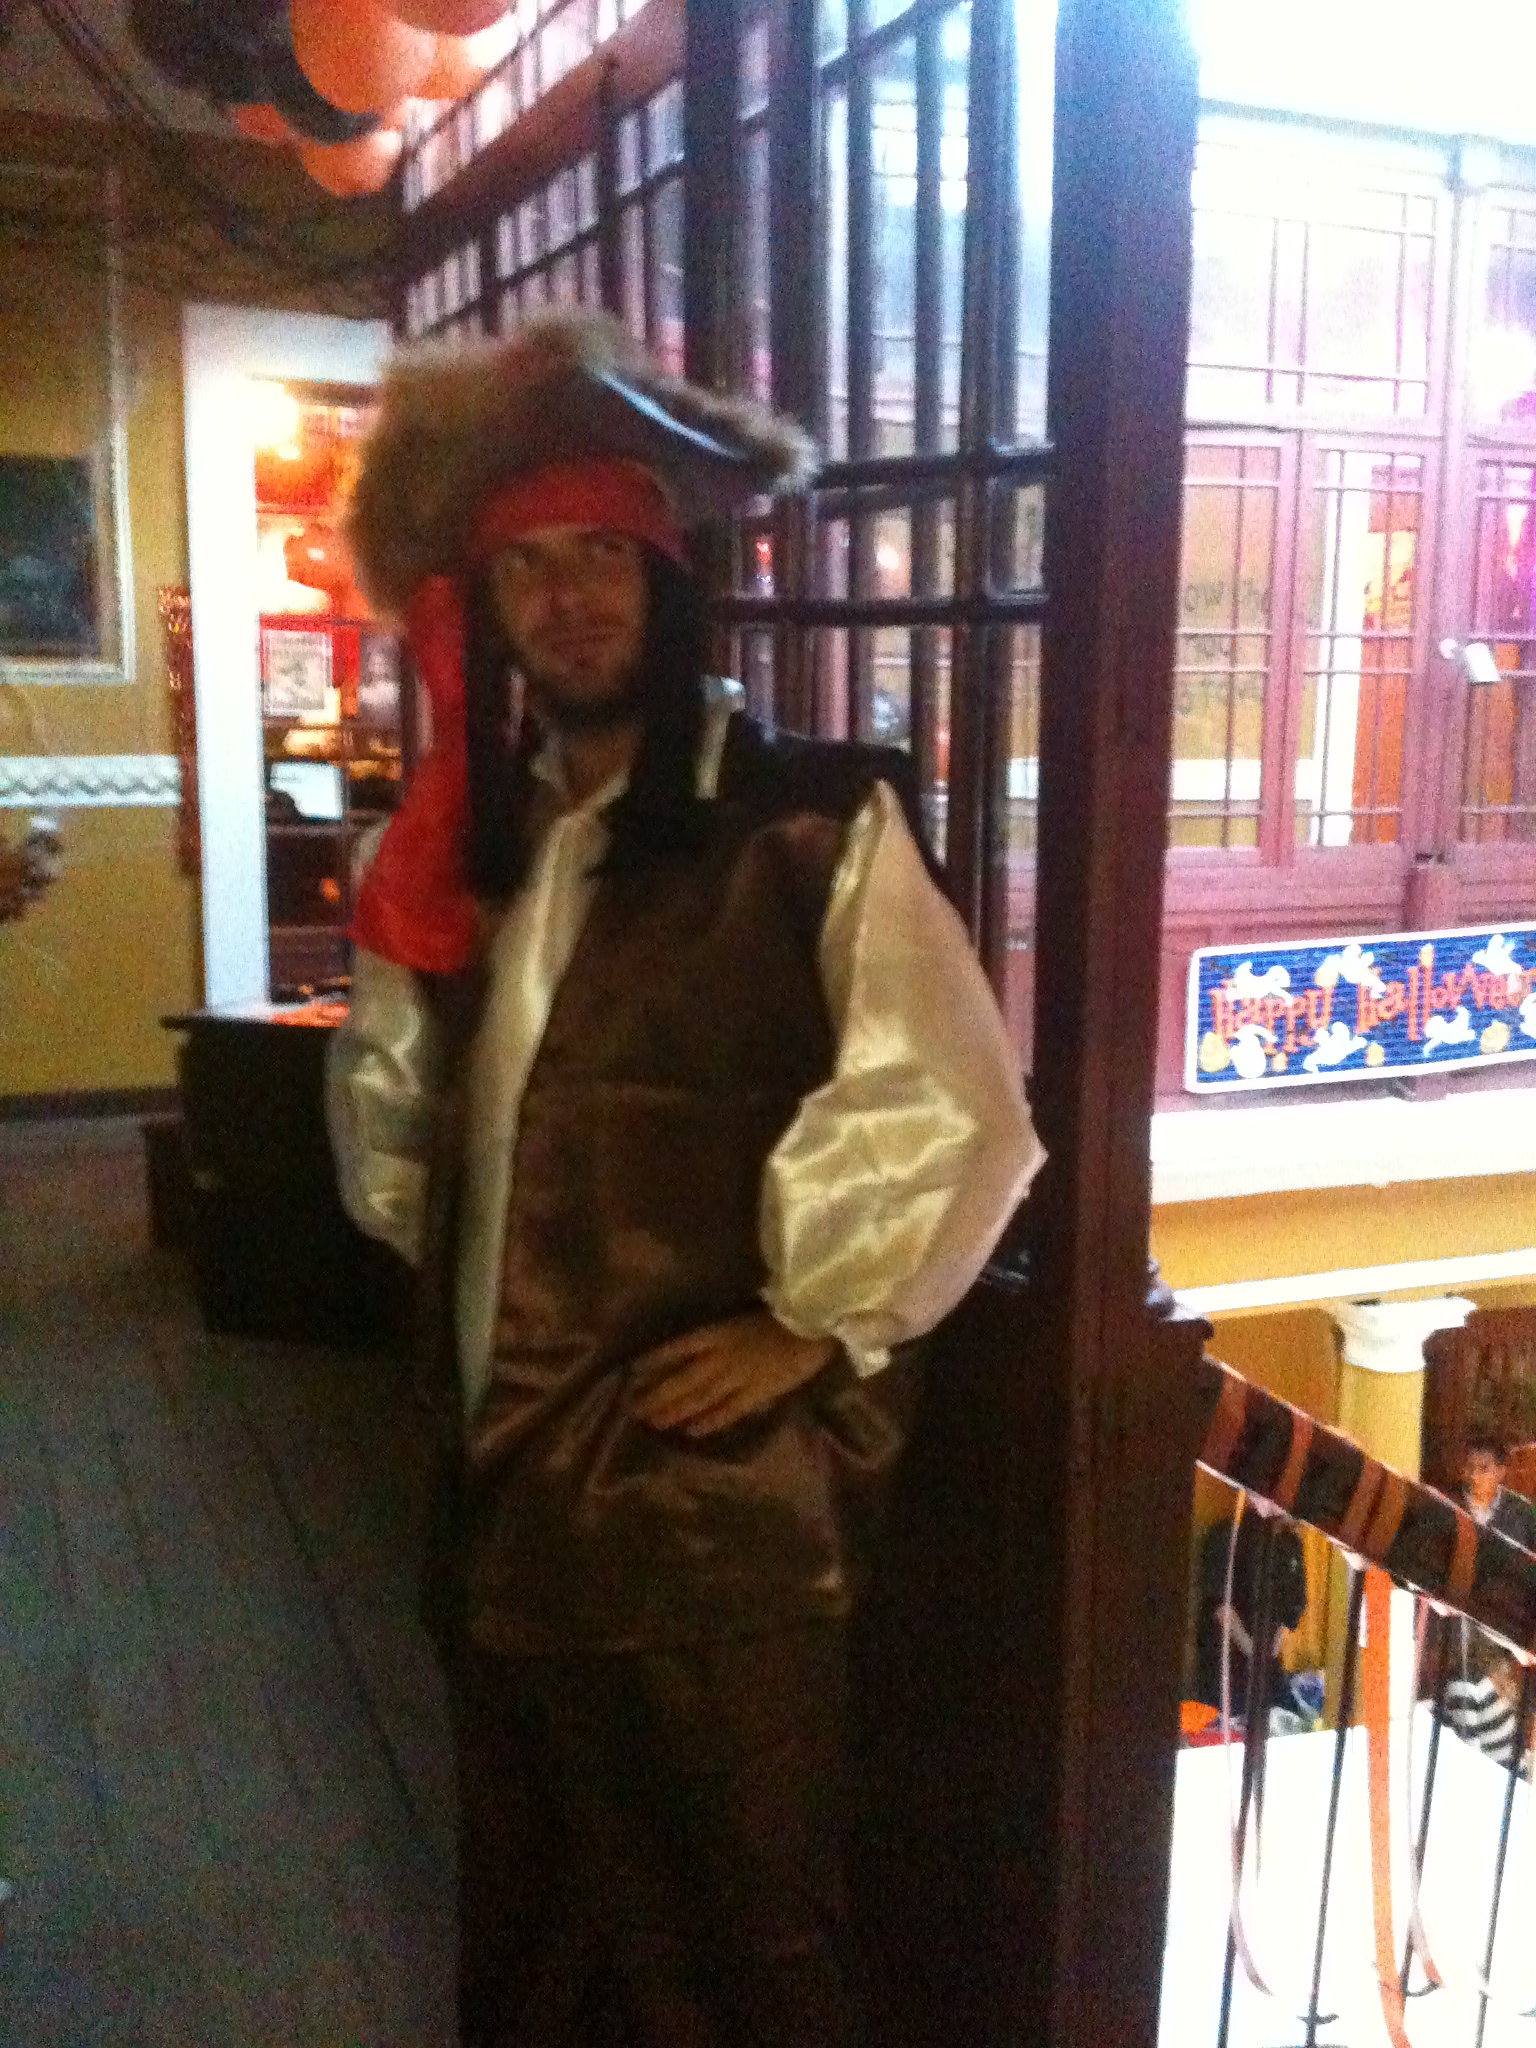 Tom Bourlet as Jack Sparrow